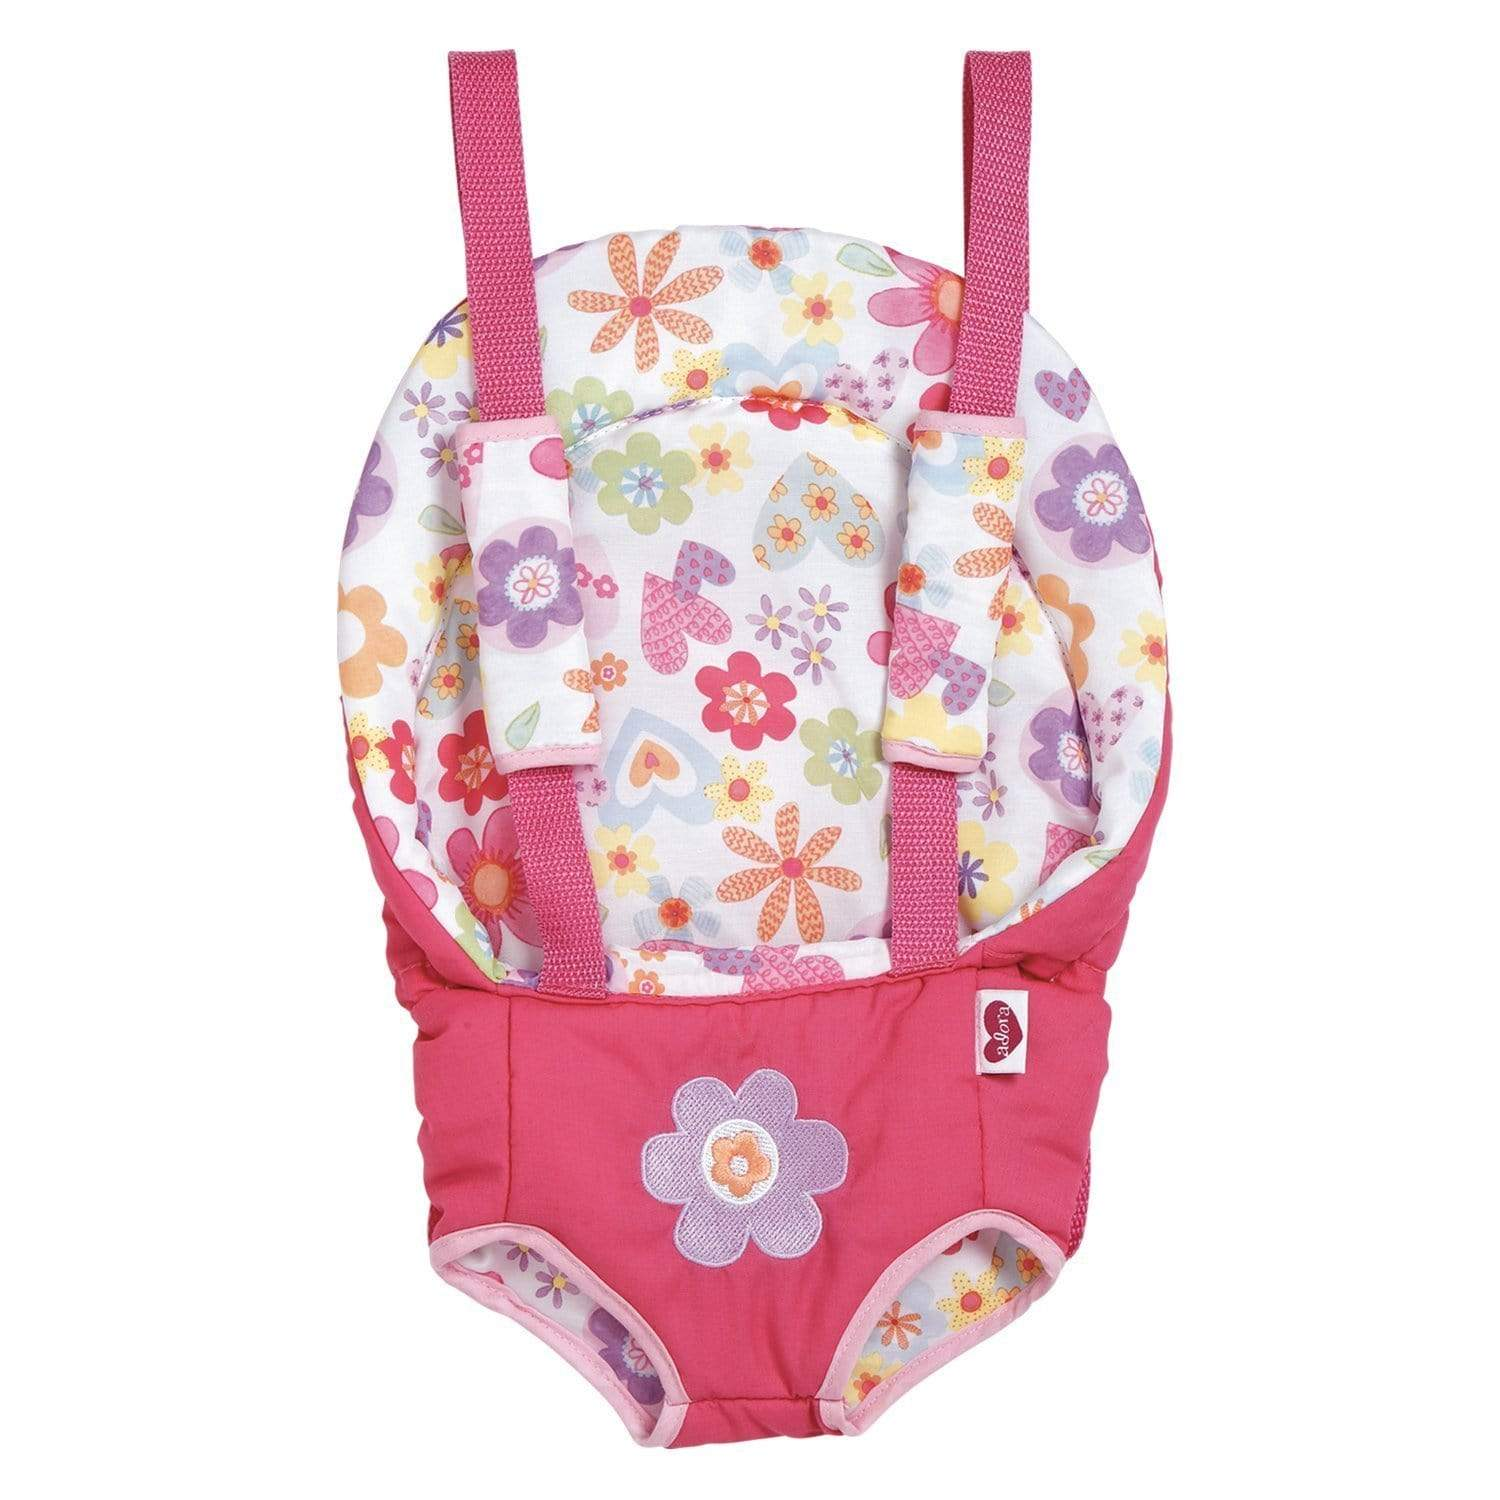 "Baby Doll Carrier Snuggle Easily fits most 13"" 20"" Doll"